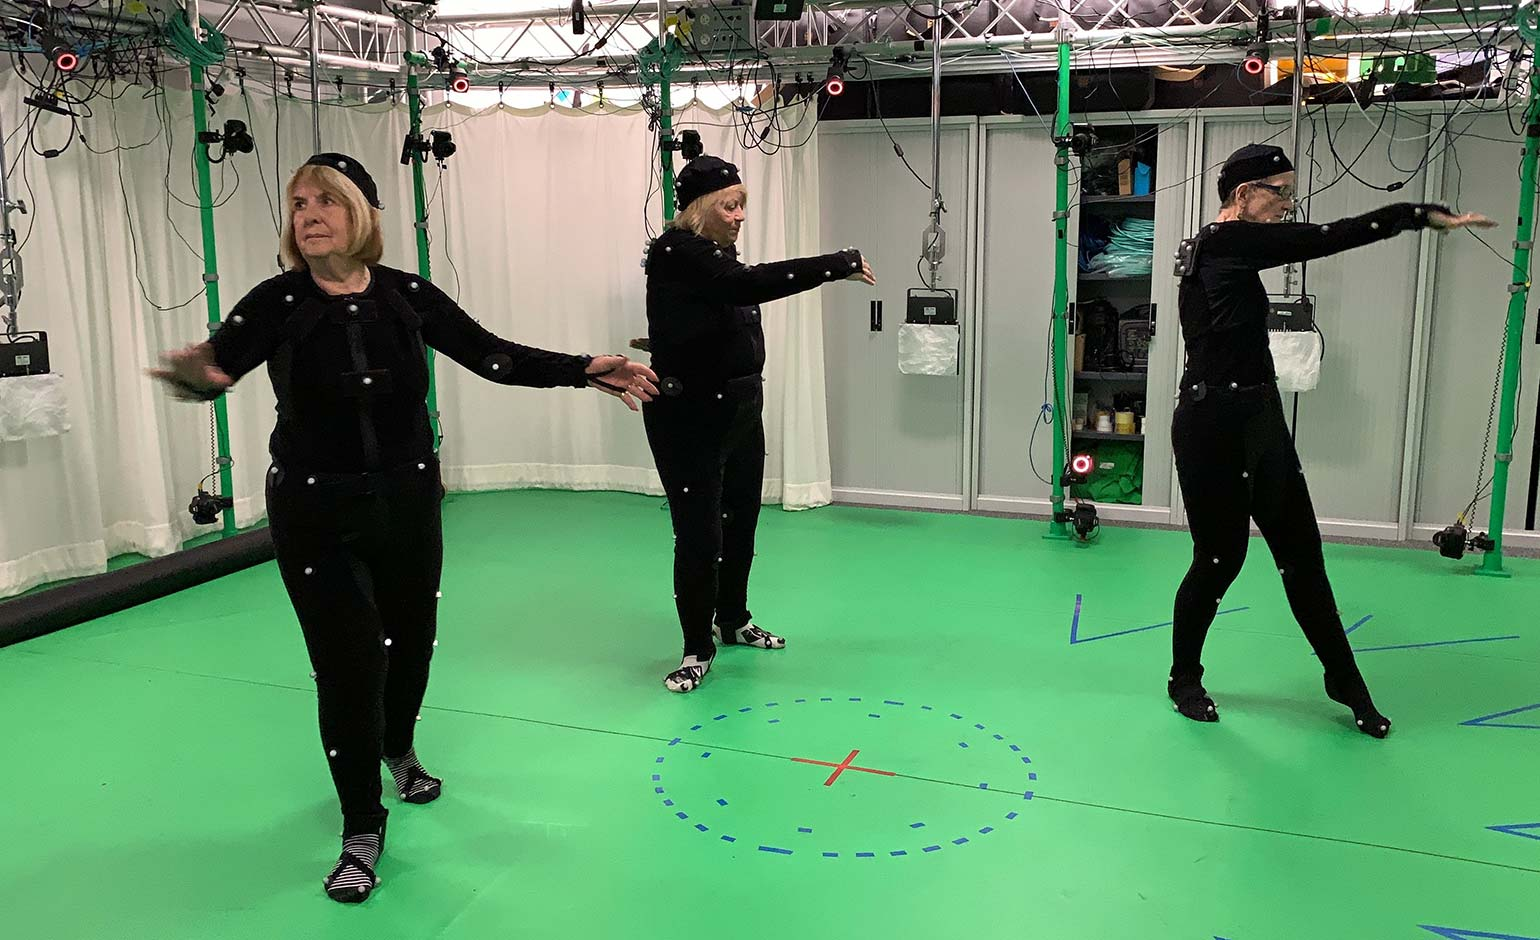 Motion capture technology being used to prevent falls in older people